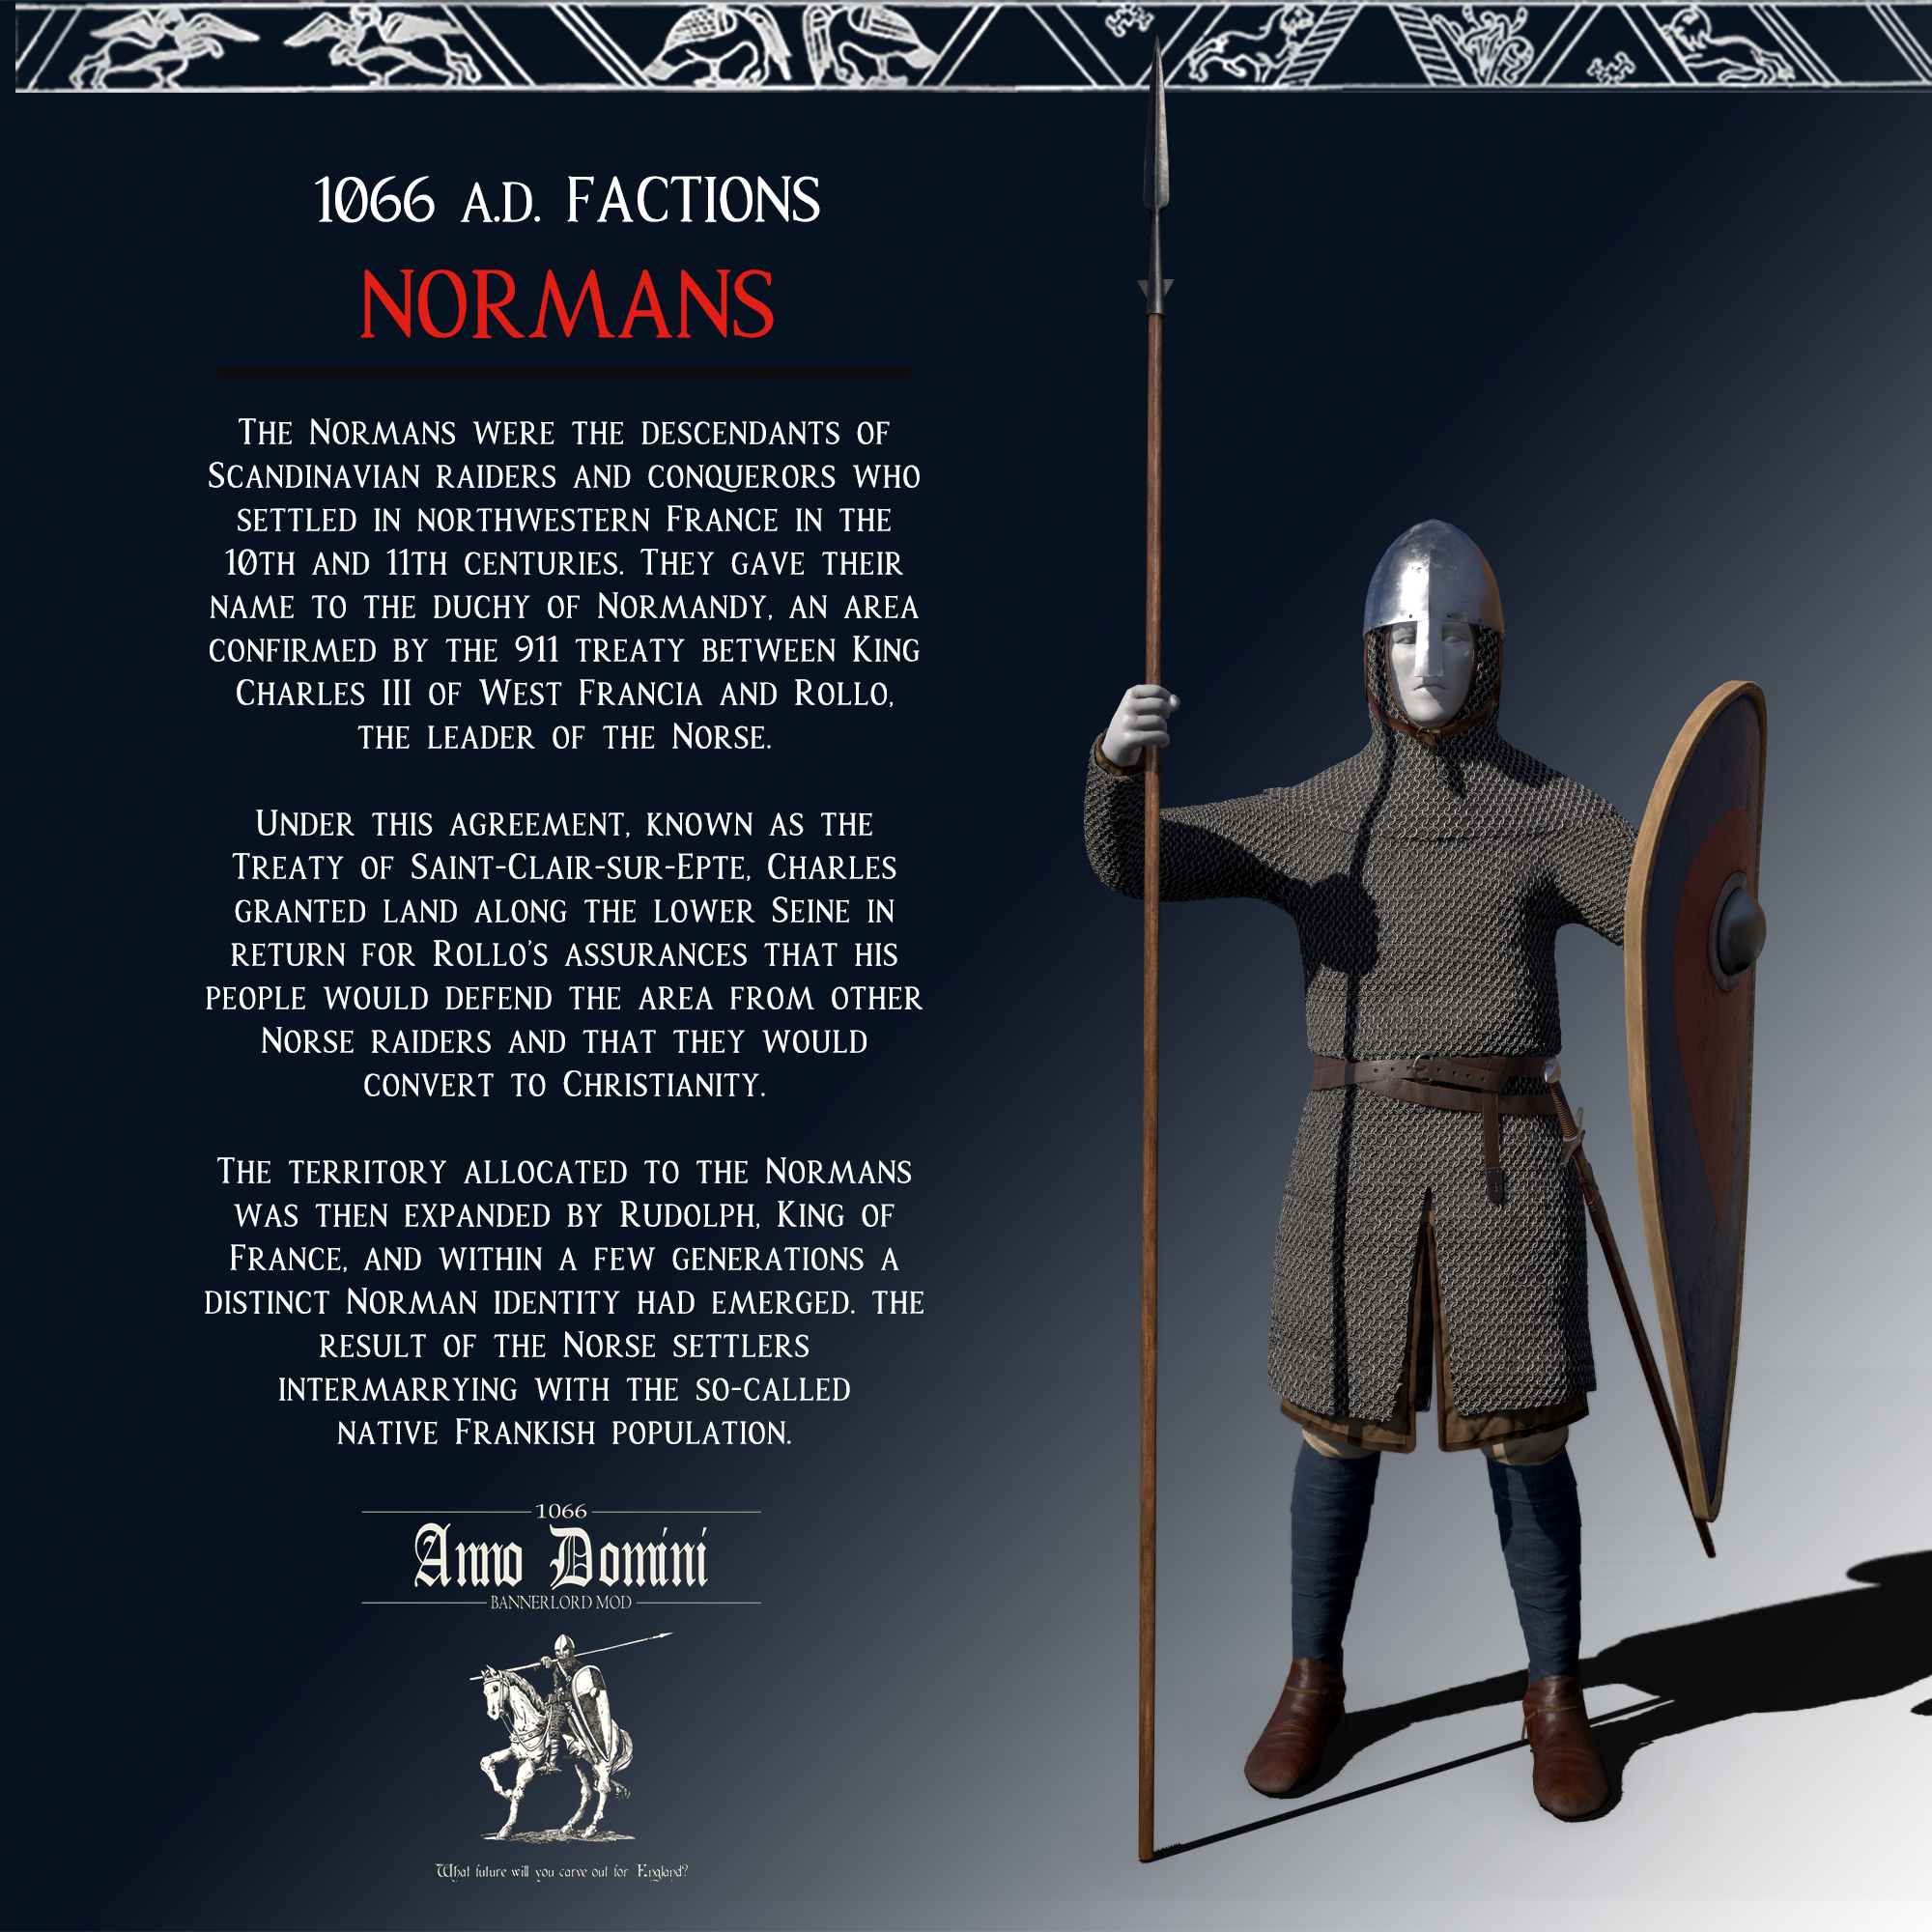 Factions Normans